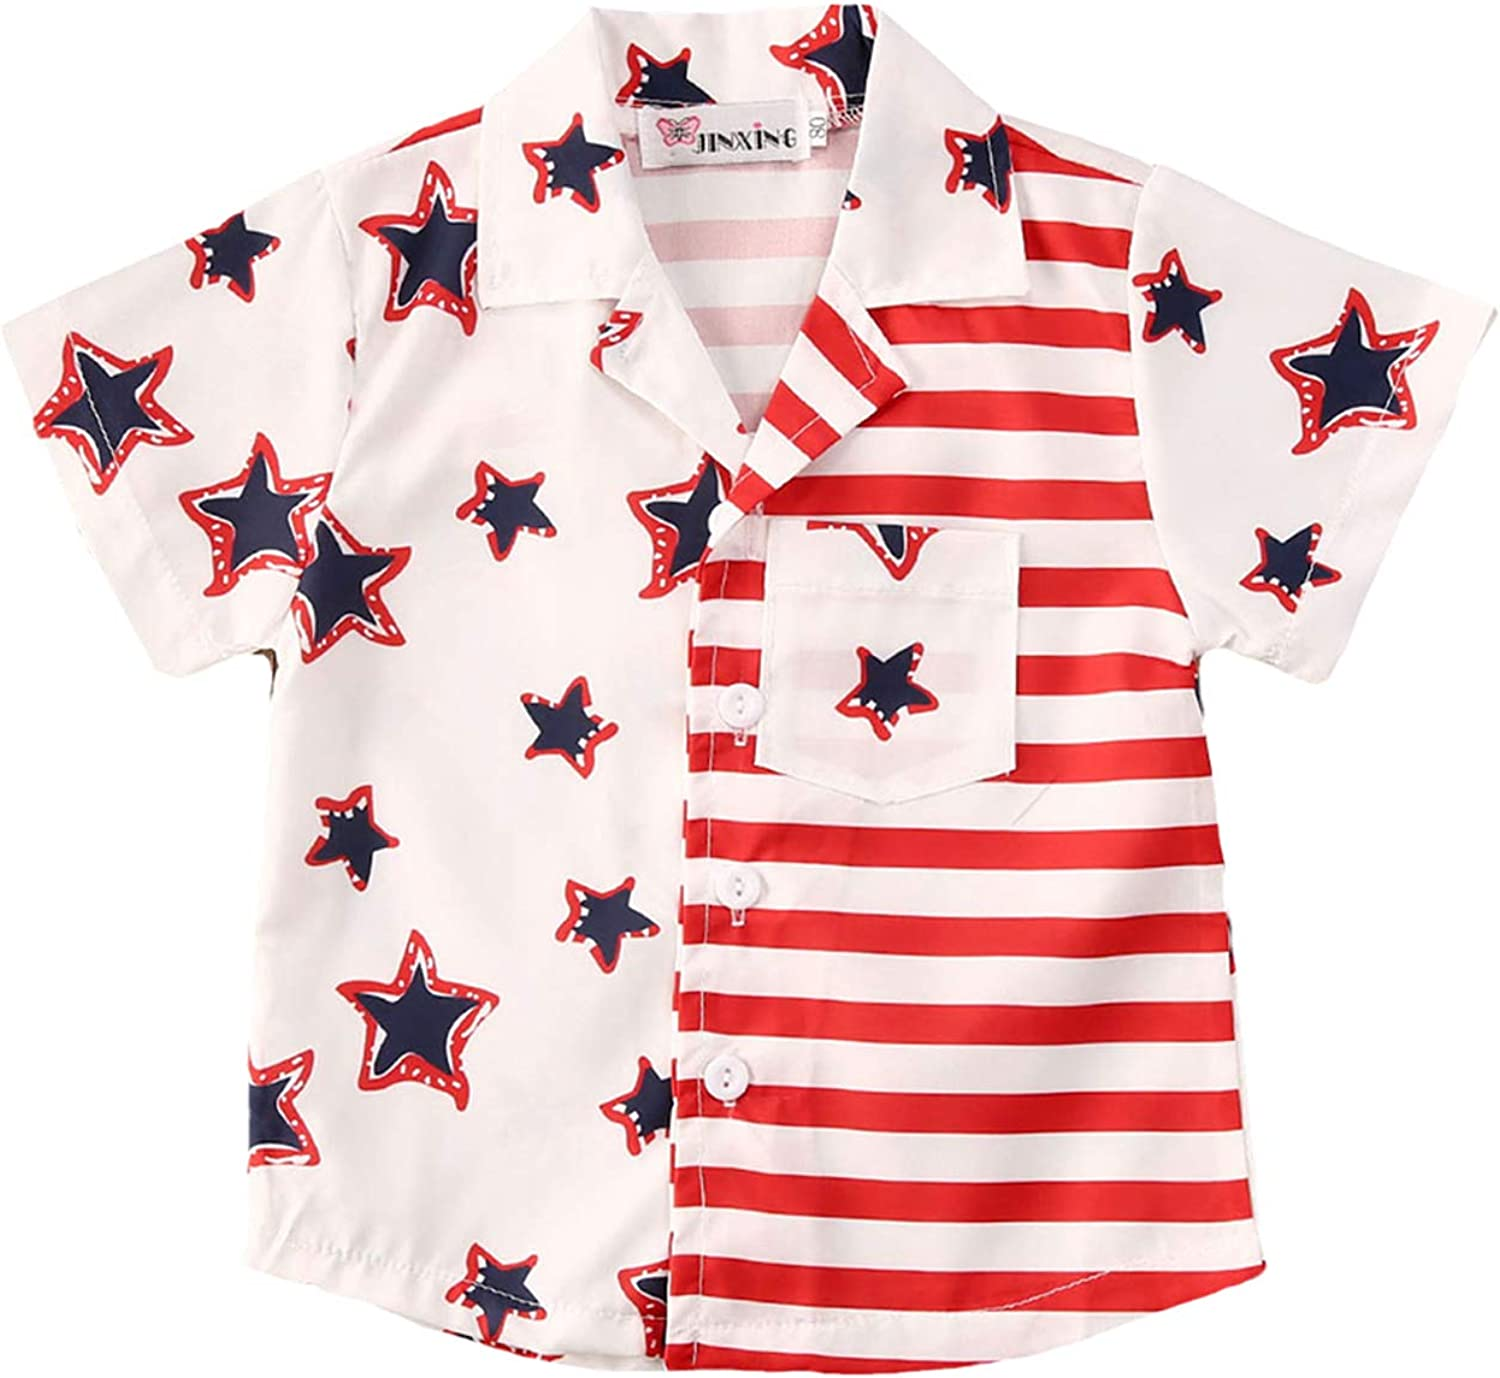 4th of July Toddler Boy Outfit Pentagonal Star Red Stripe Short Sleeve Toddler Boy Fourth of July Shirt Clothes